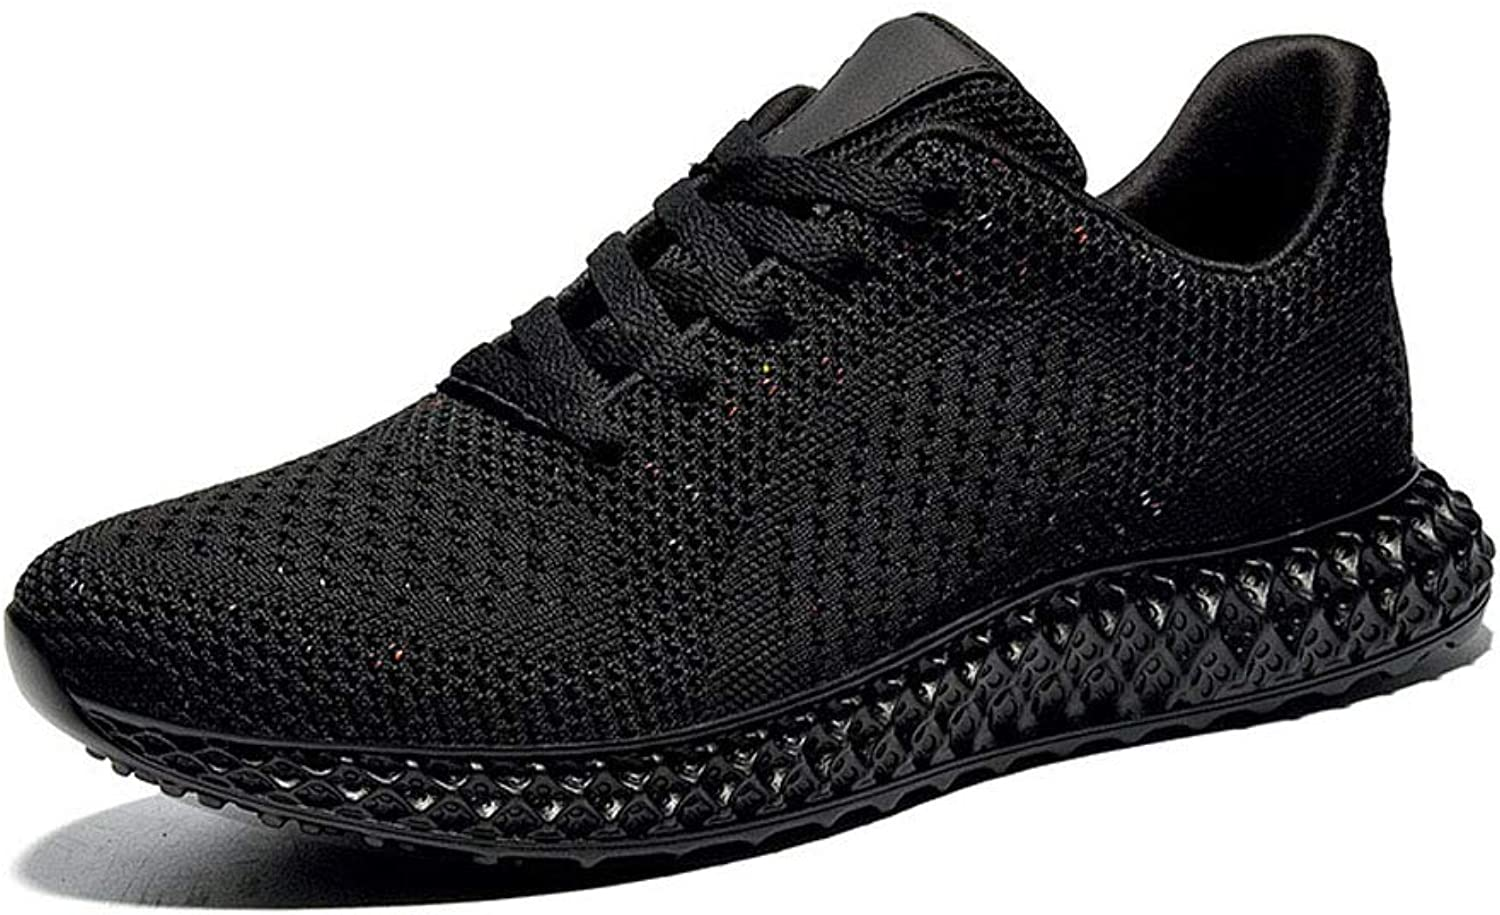 Sports shoes Fly Woven lace Casual shoes Breathable Sports Fitness Running shoes-black-43